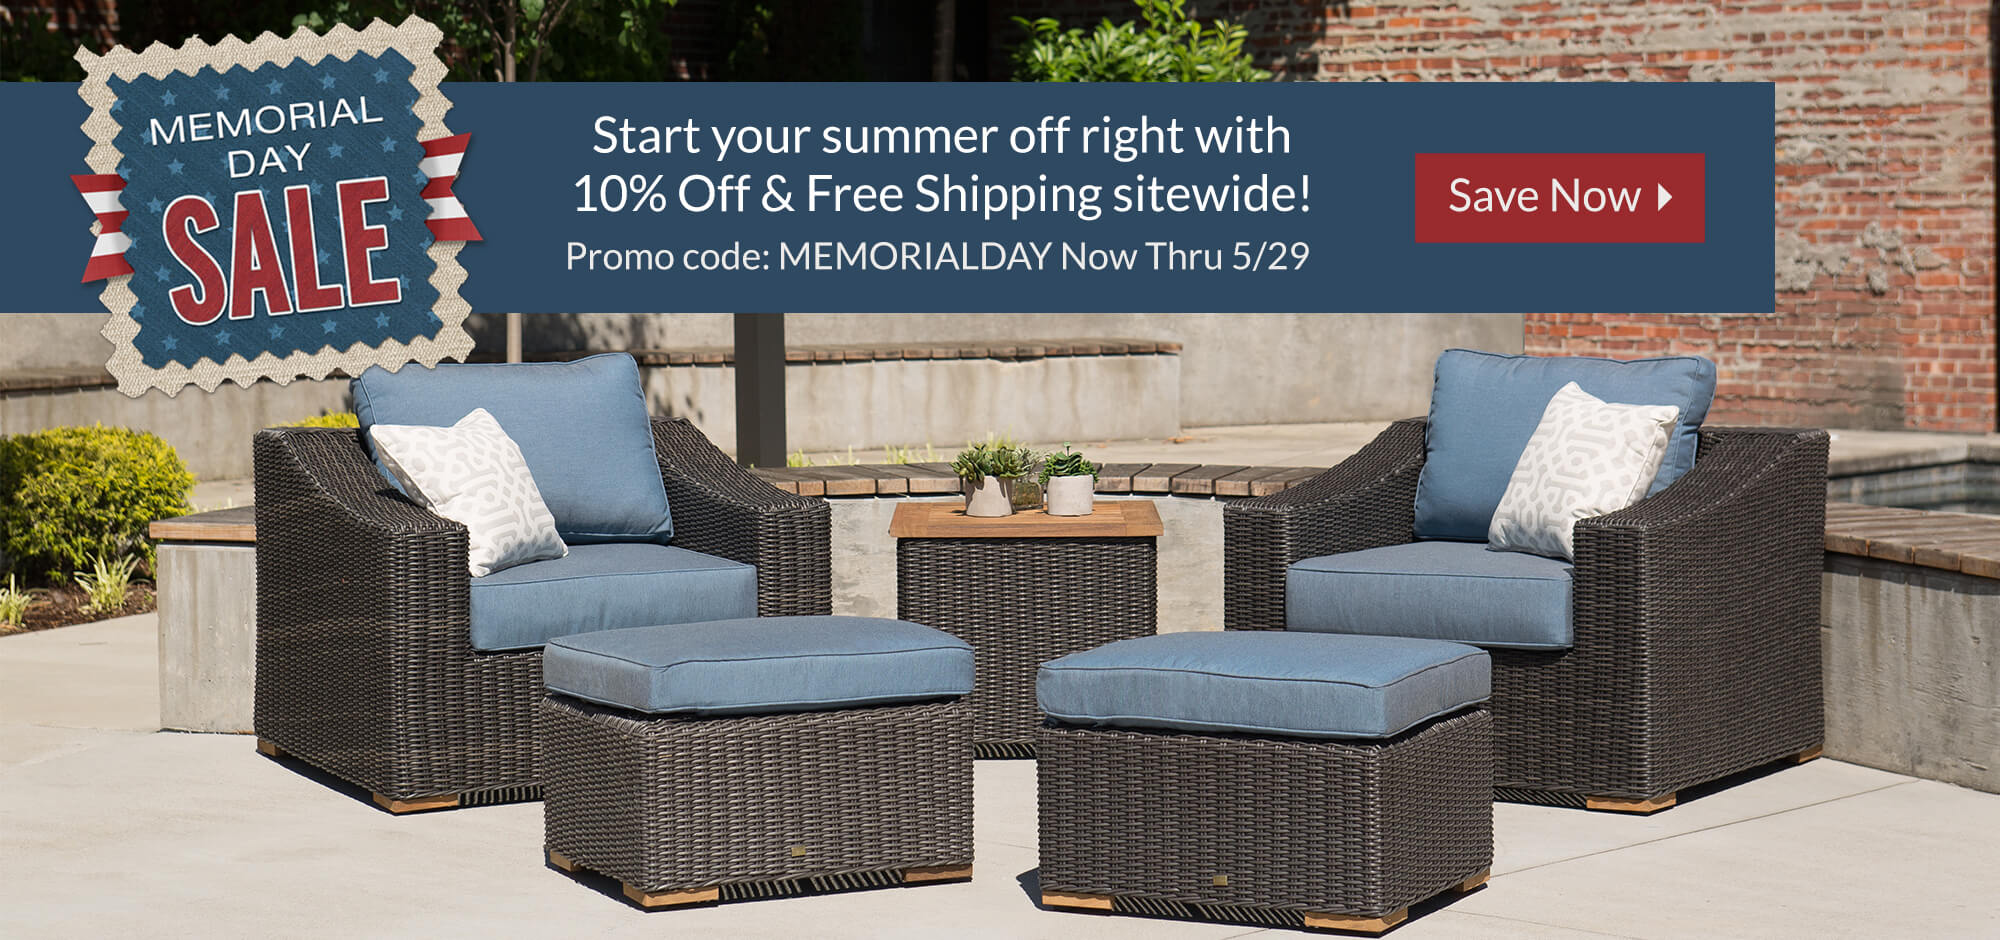 Memorial Day Sale - Free Shipping